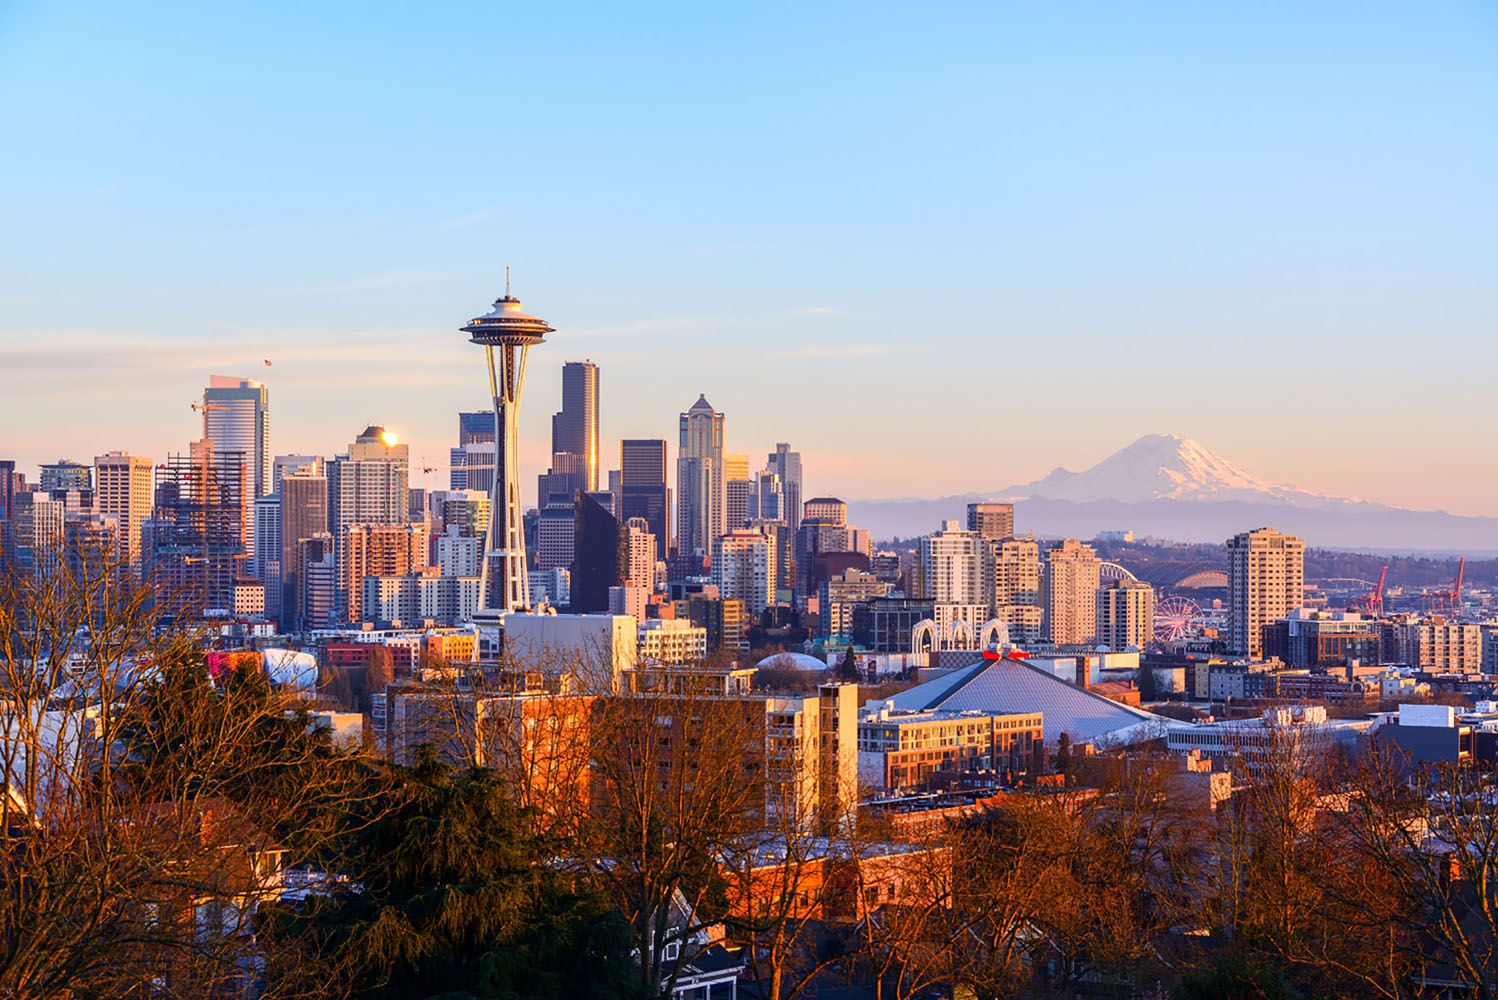 The Seattle, Washington skyline.